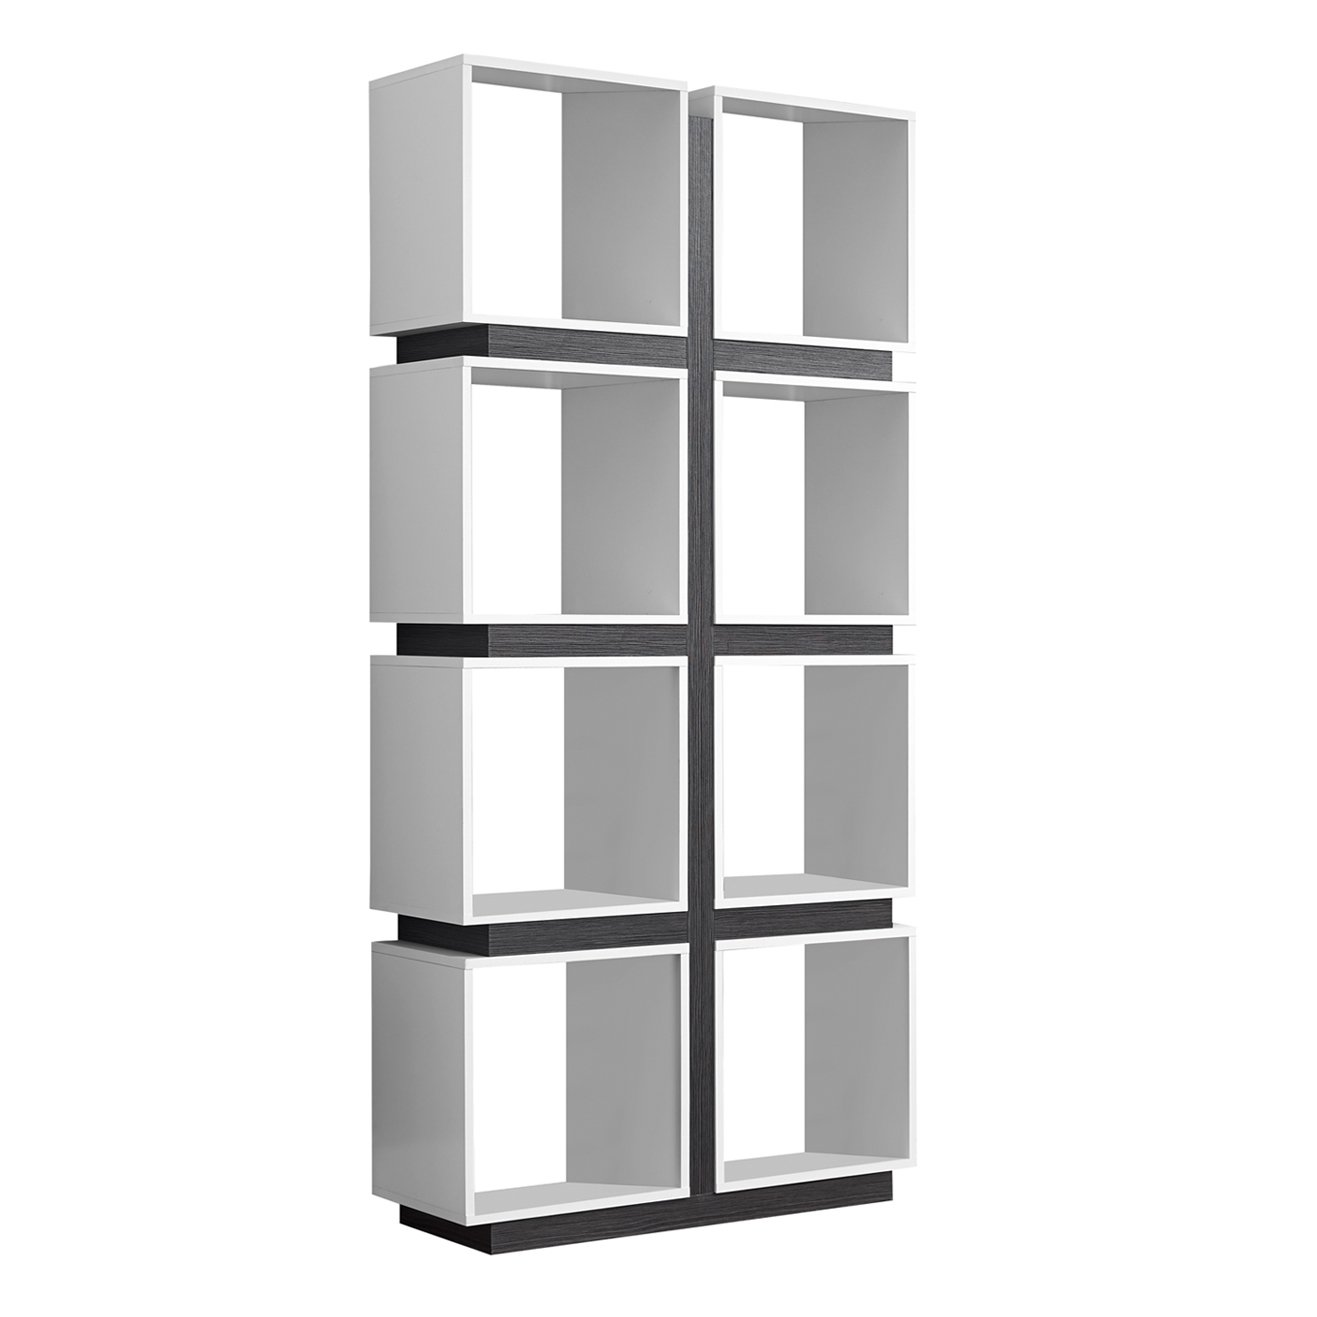 Monarch Specialties White Grey Hollow-Core Bookcase, 71-Inch